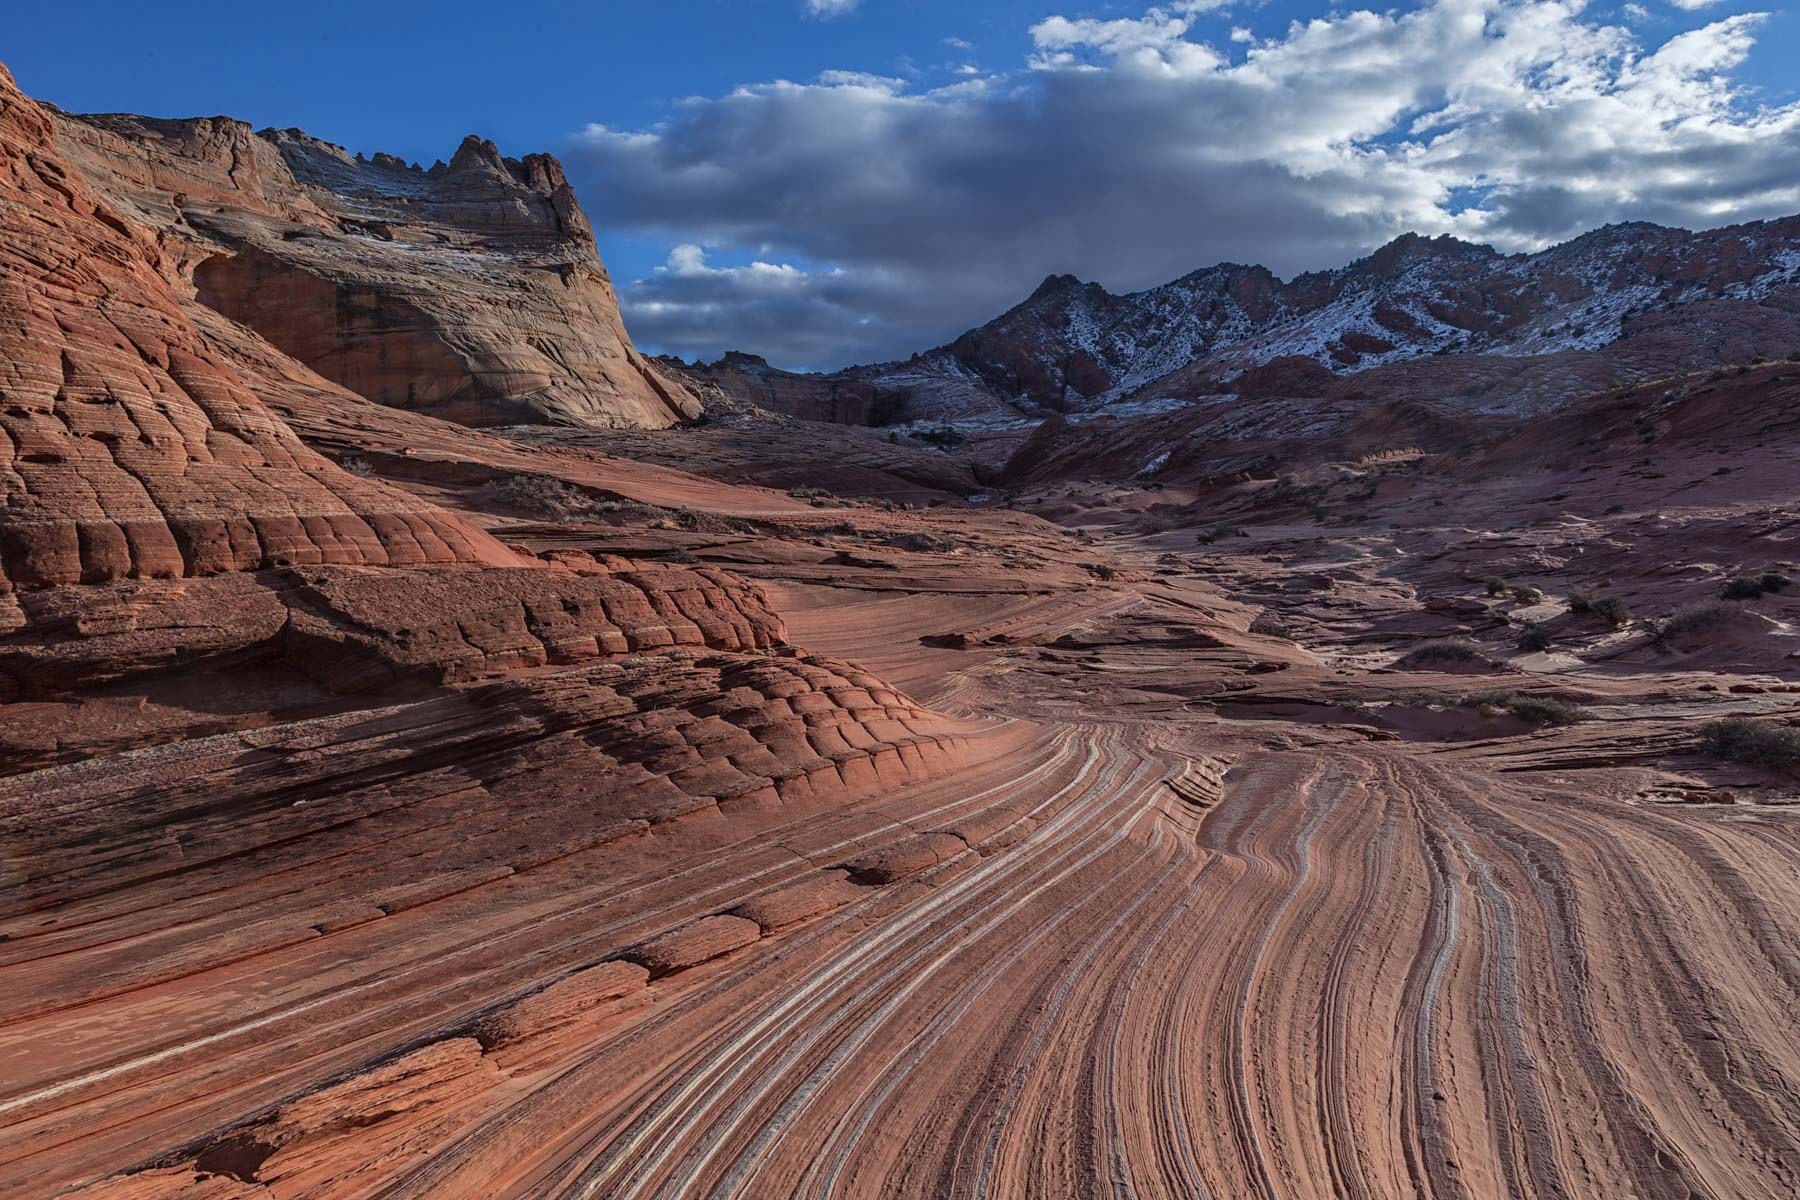 The view south from Sand Cove in Coyote Buttes North, Arizona